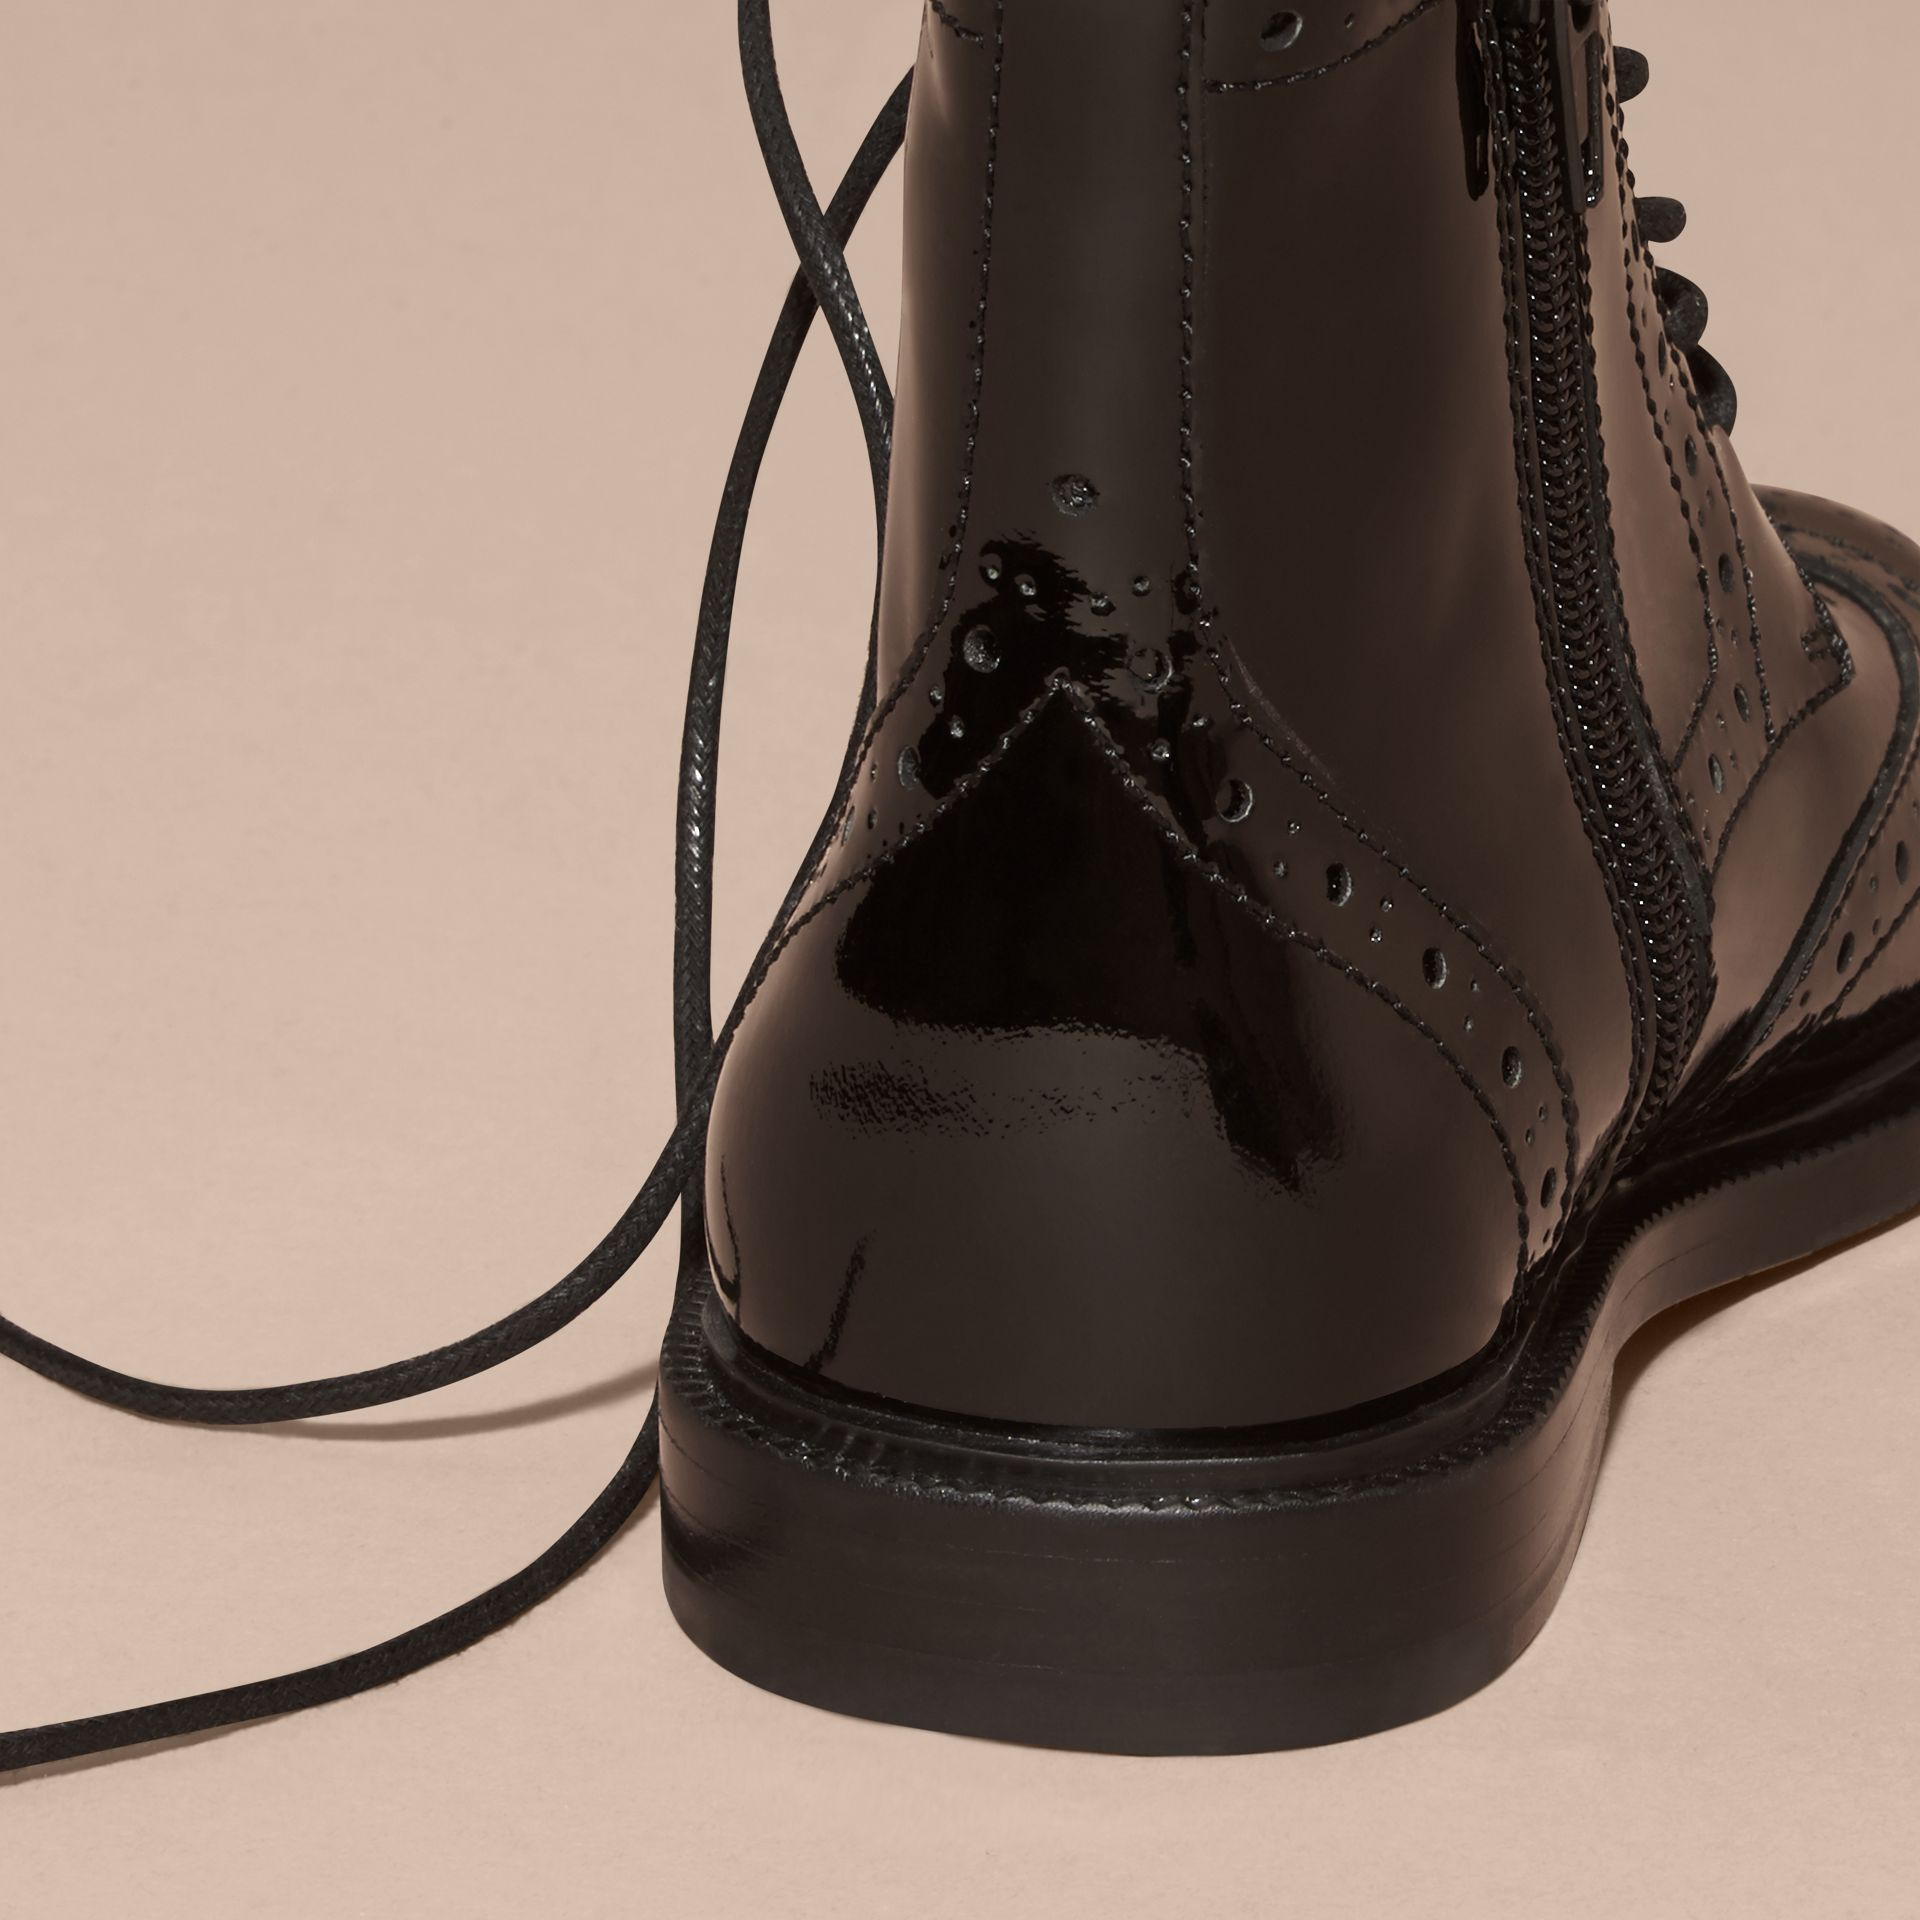 Noir Bottines Richelieu à lacets en cuir verni - photo de la galerie 4